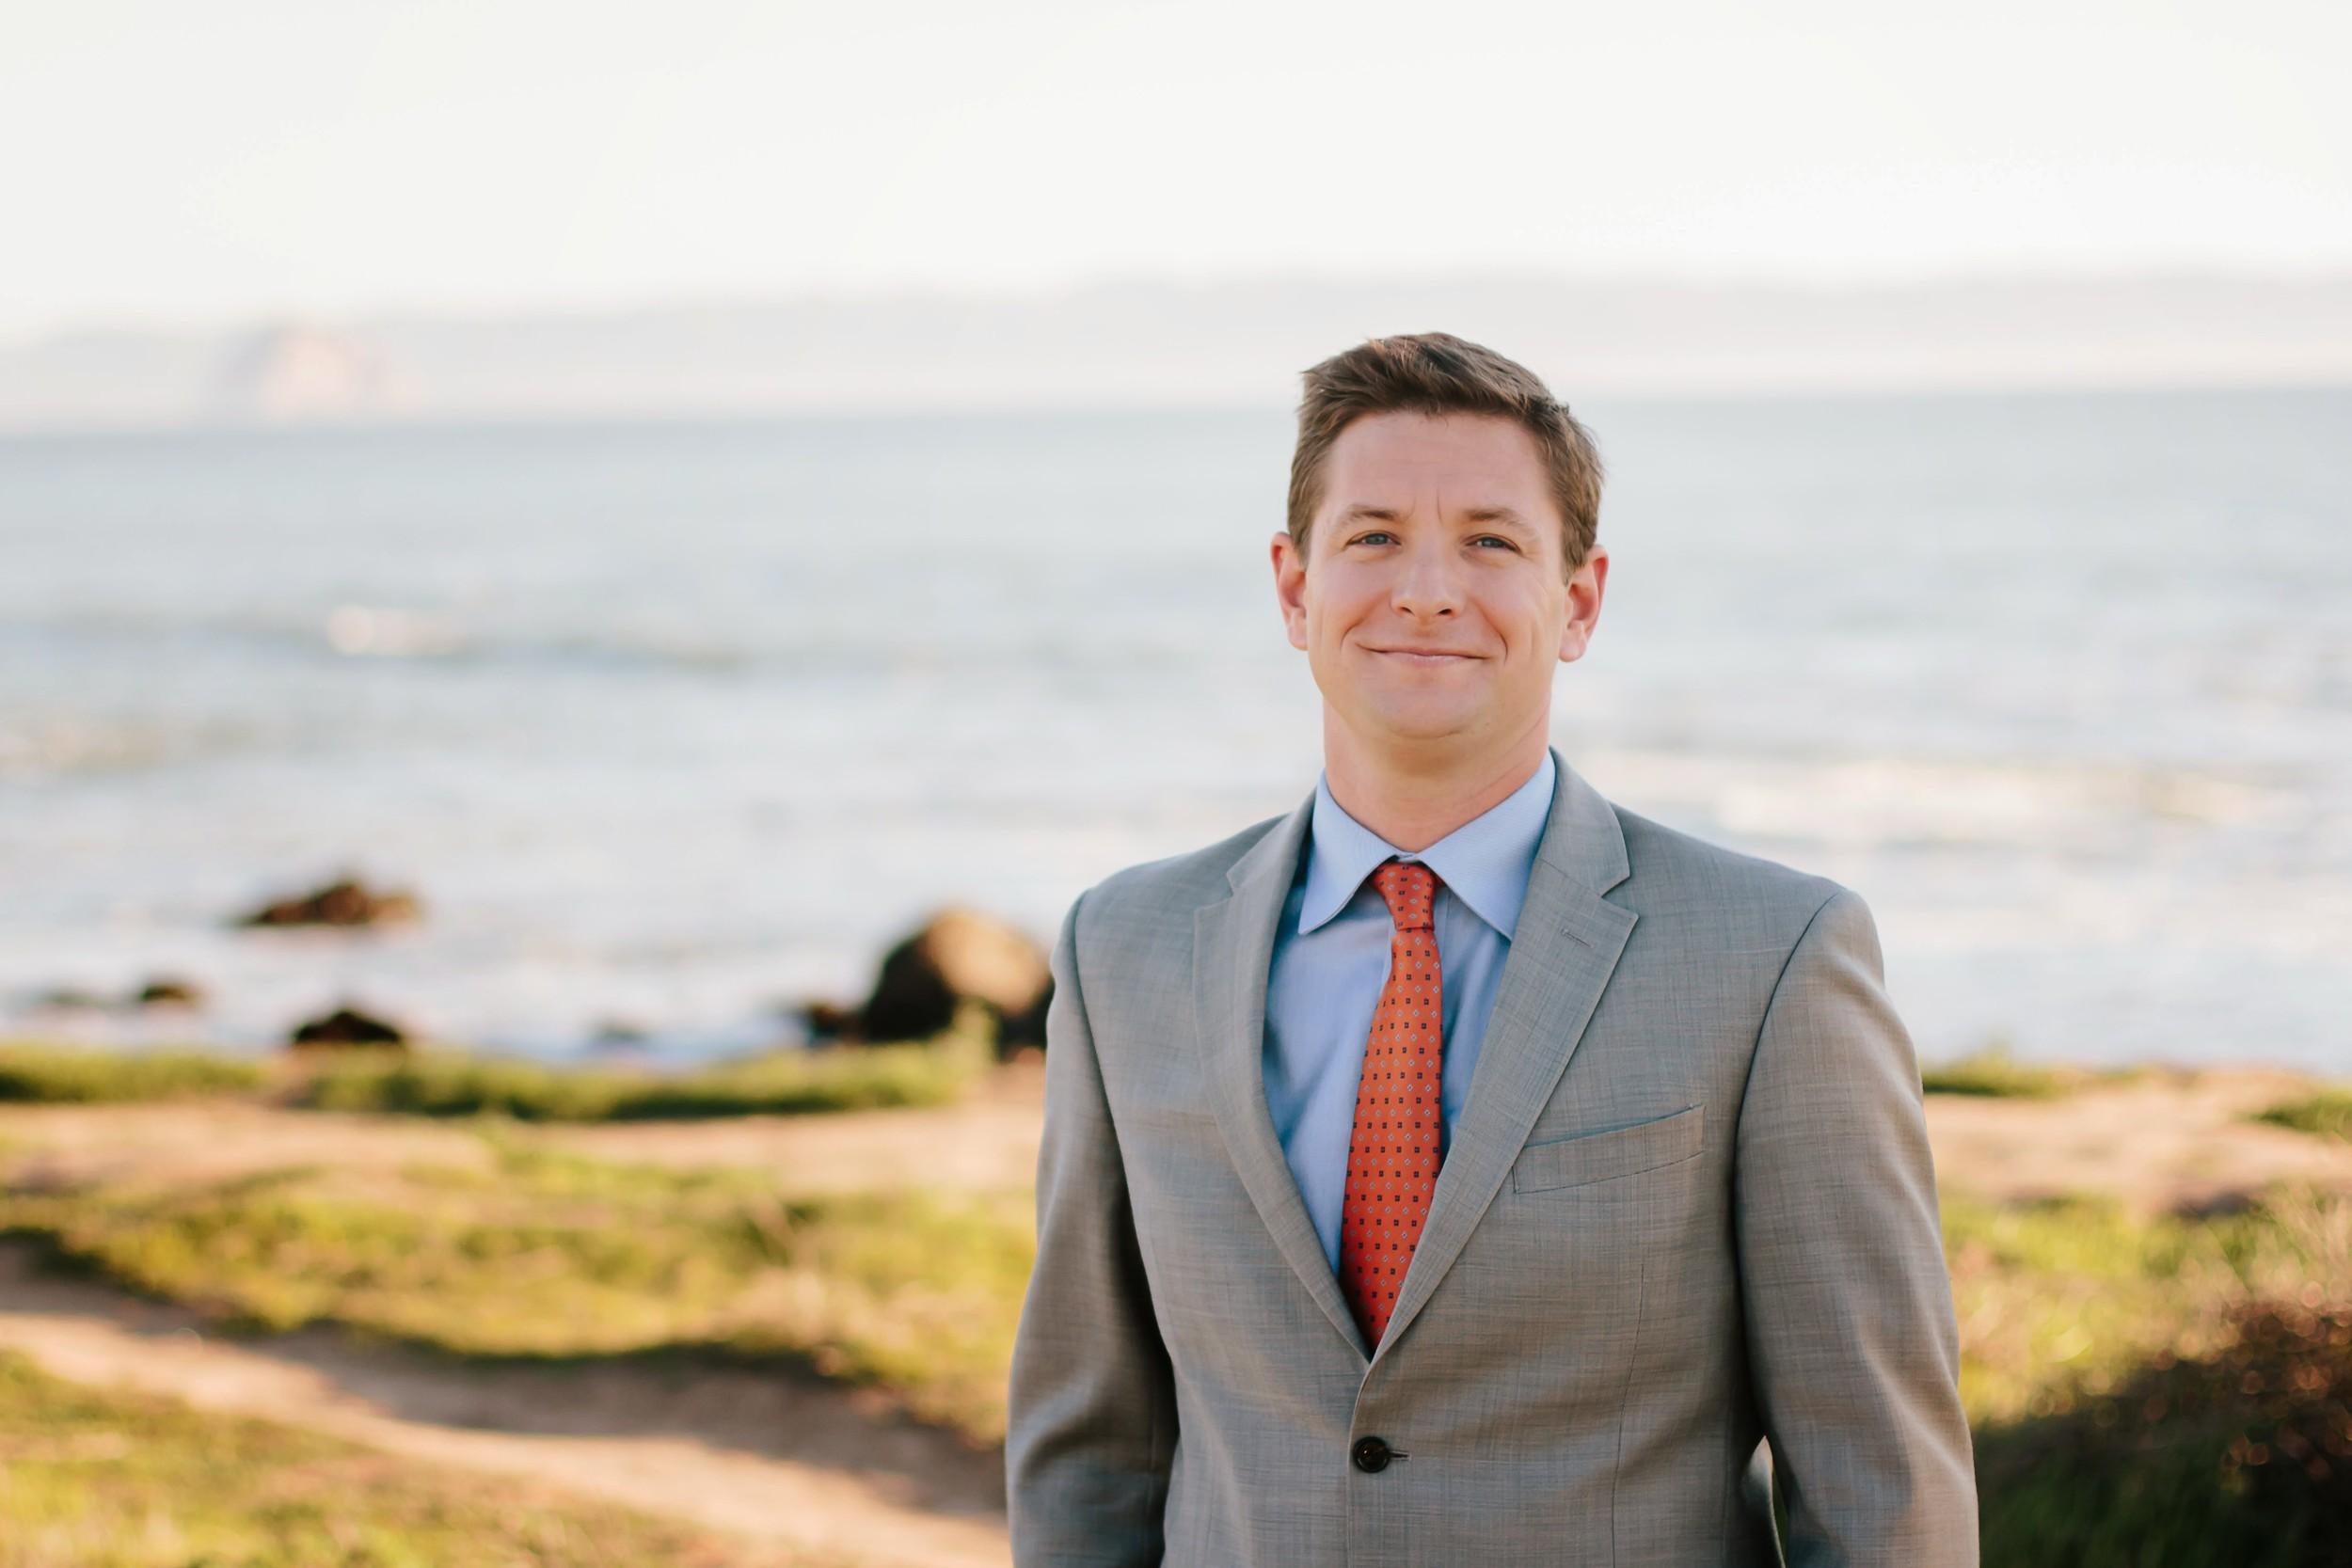 San Luis Obispo Criminal Defense Attorney